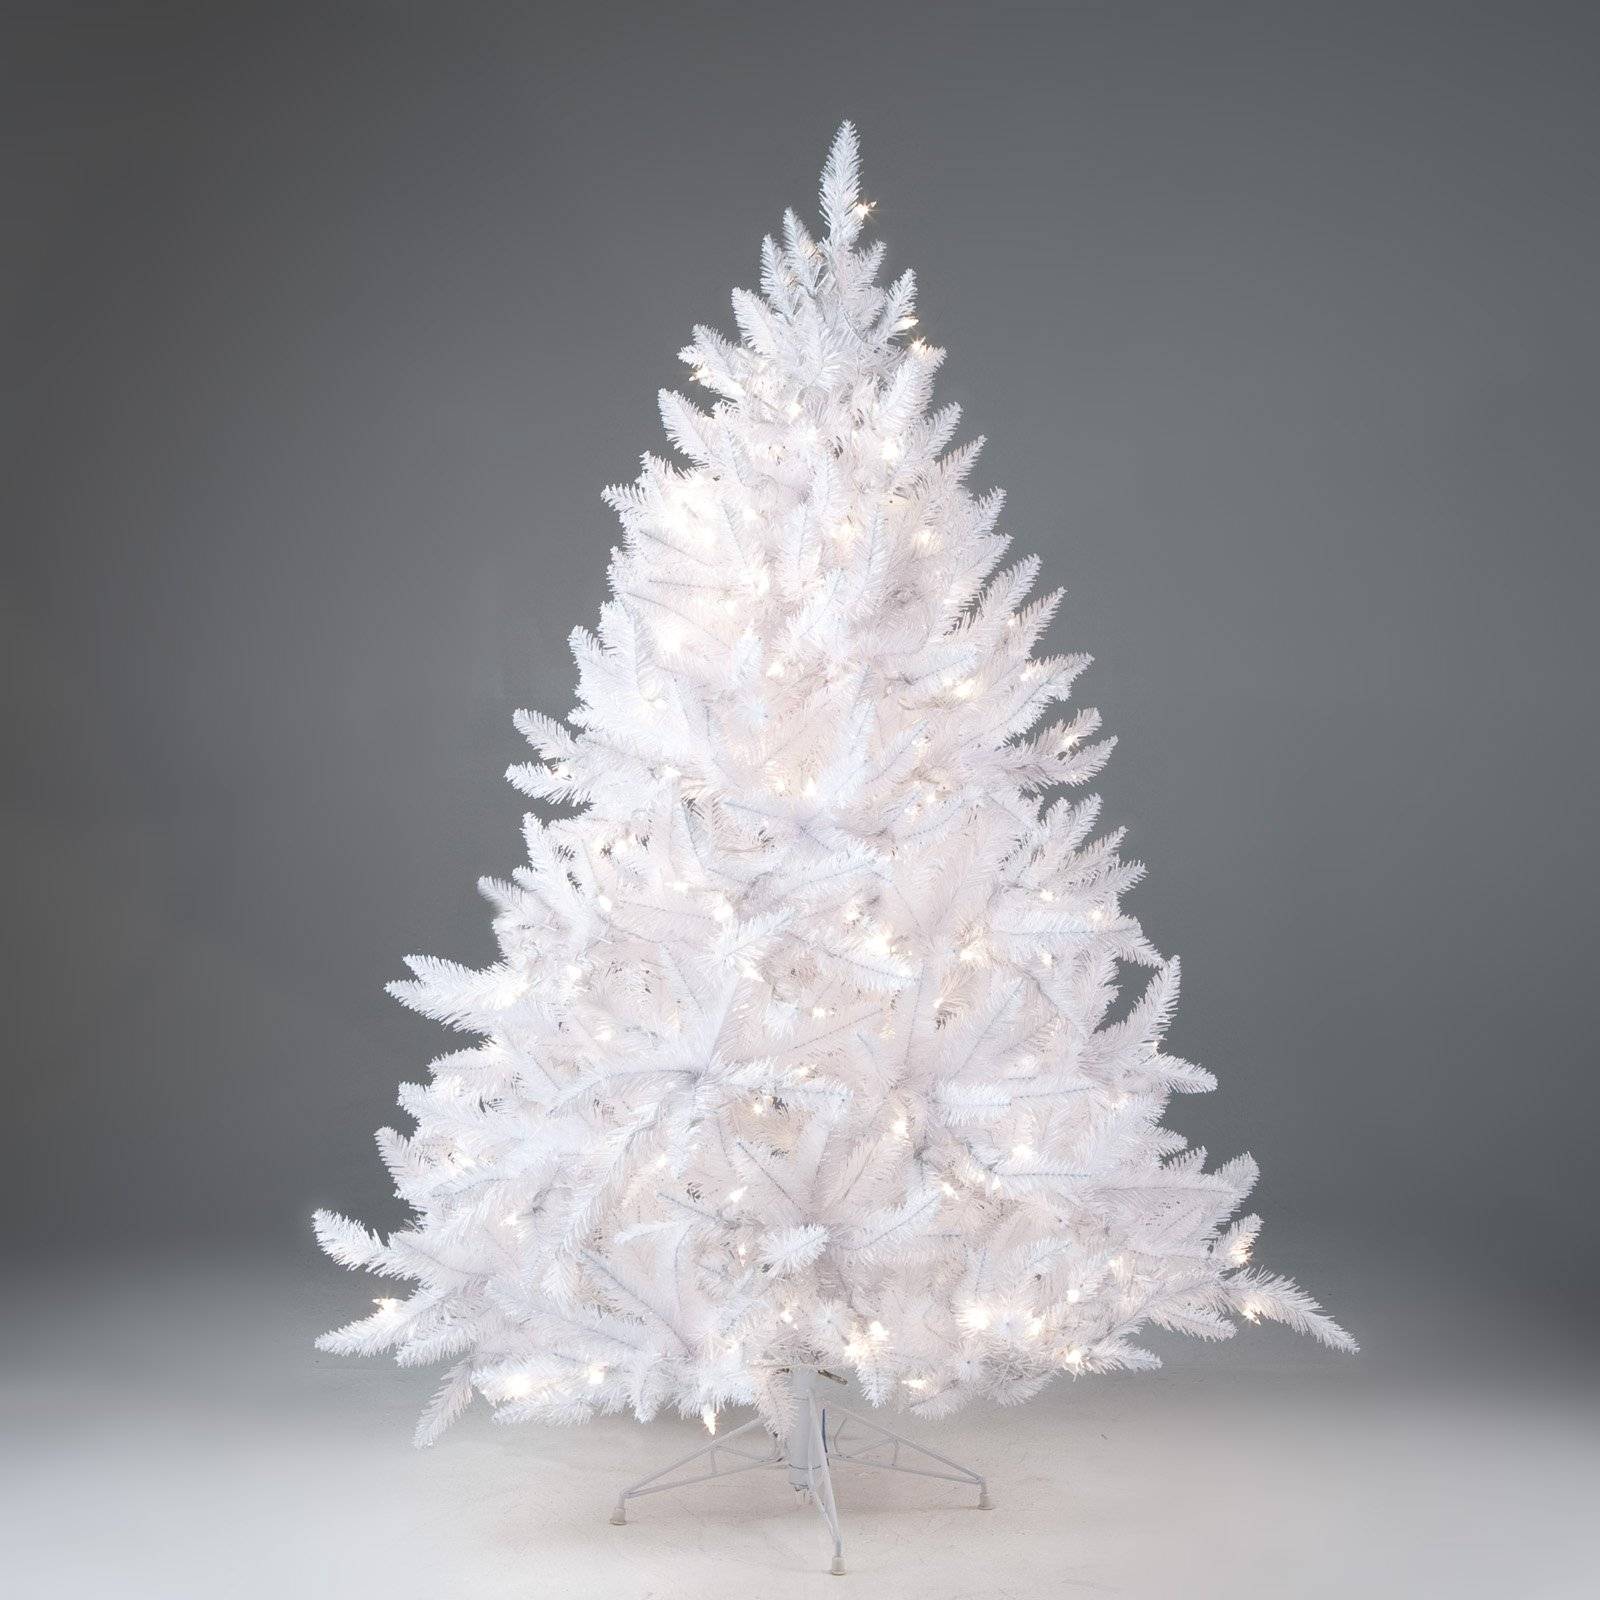 winter park tabletop pre lit christmas tree 45 ft walmartcom - Small Pre Decorated Christmas Trees